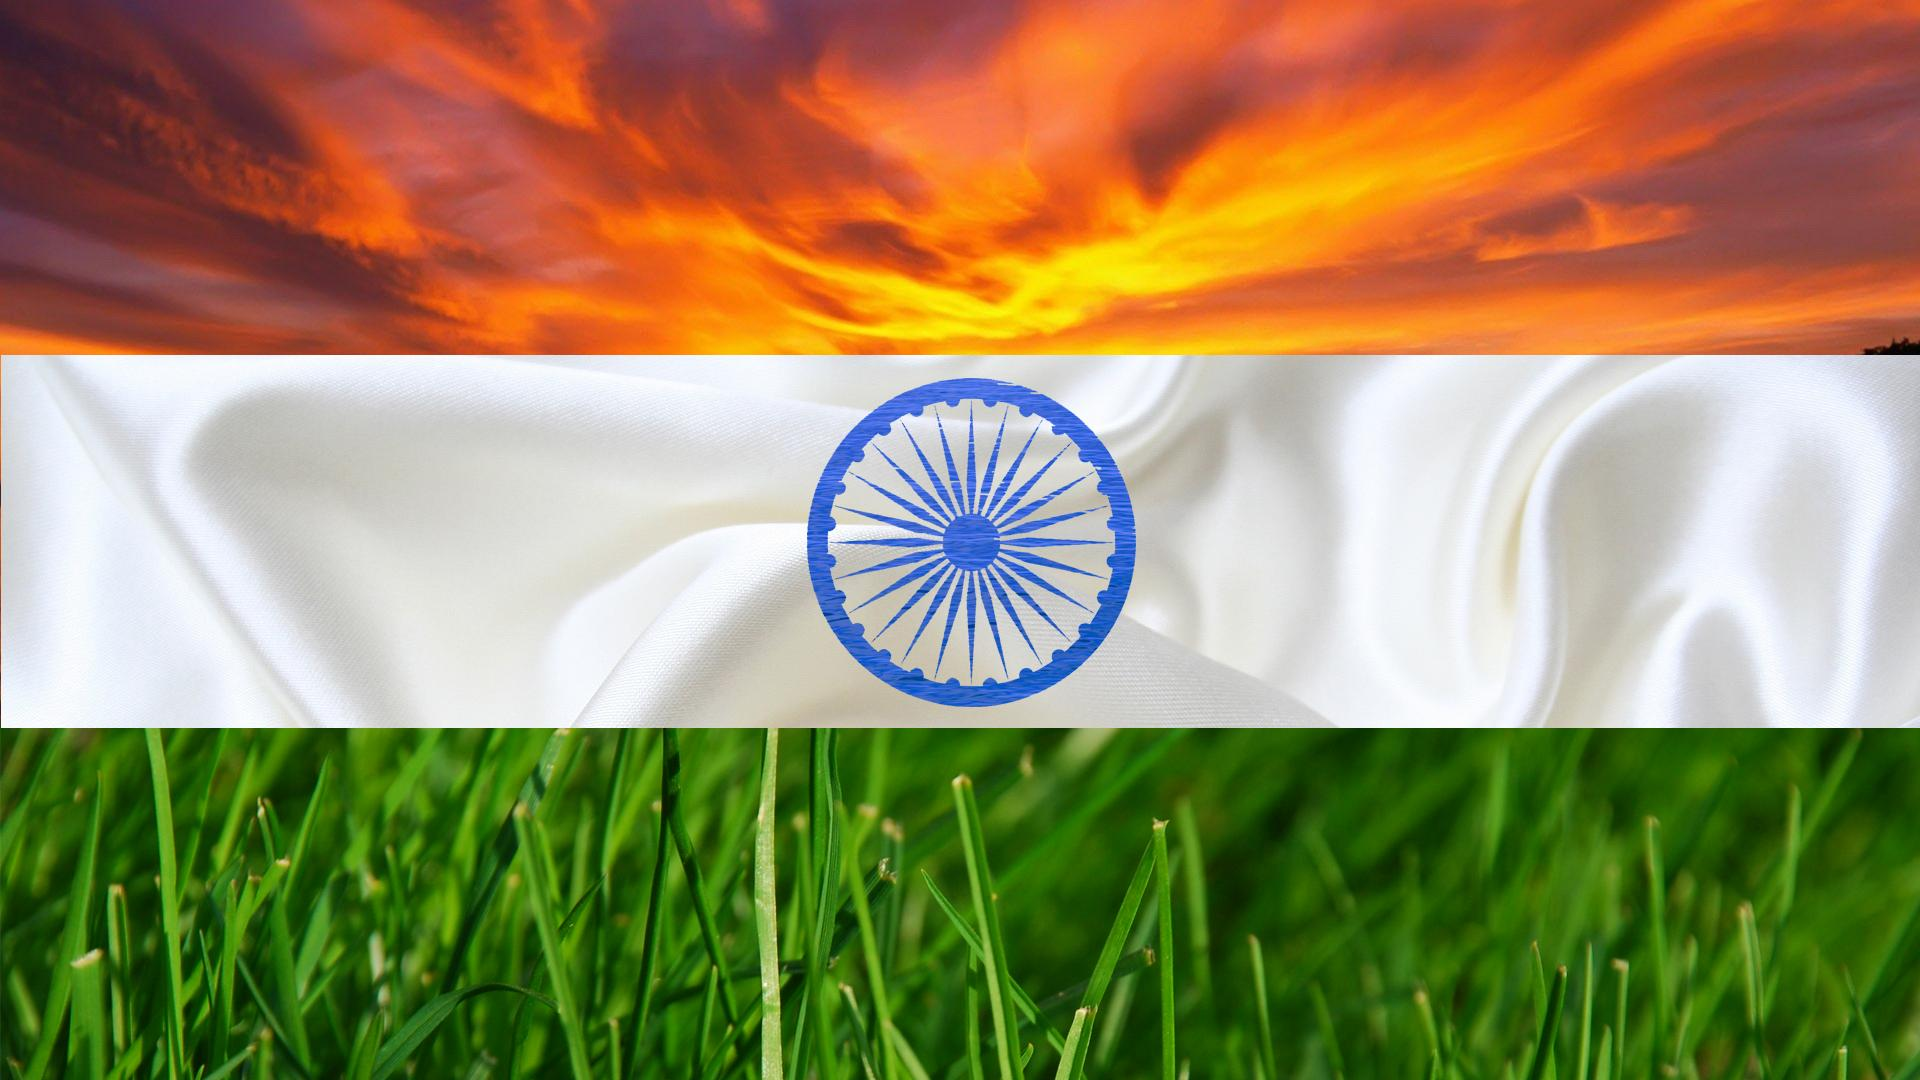 Indian Flag Hd Wallpaper: Indian National Flag Wallpaper 3D